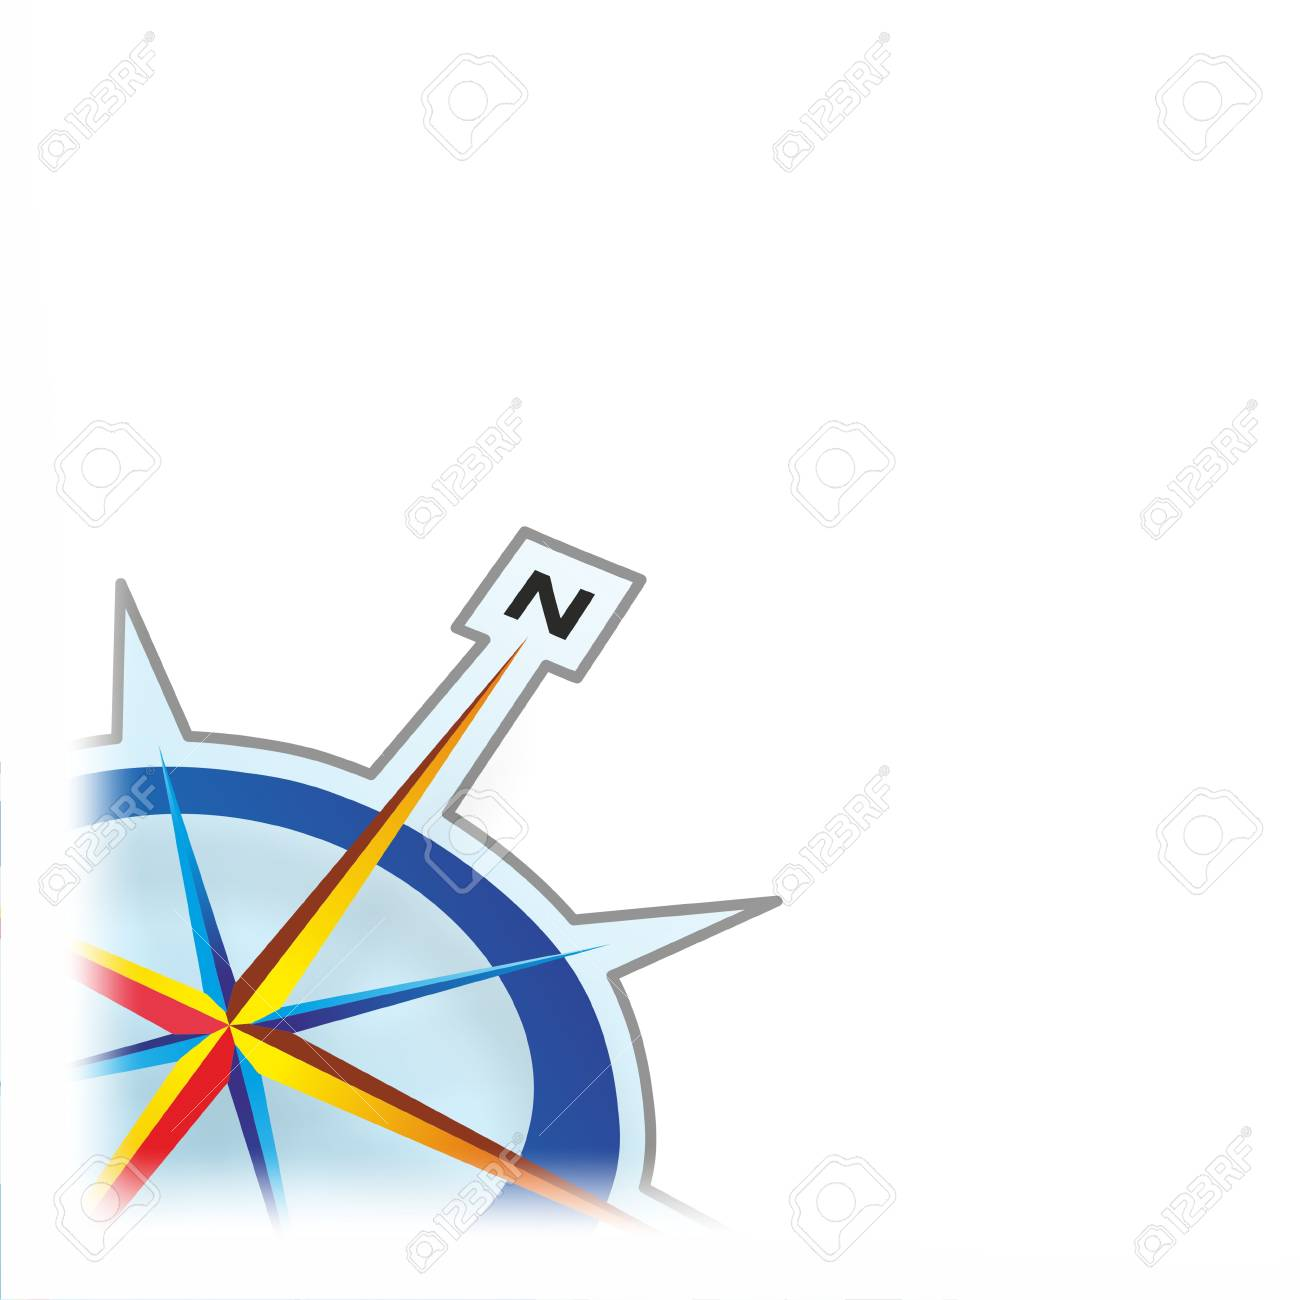 detail of a compass rose as a template stock photo picture and